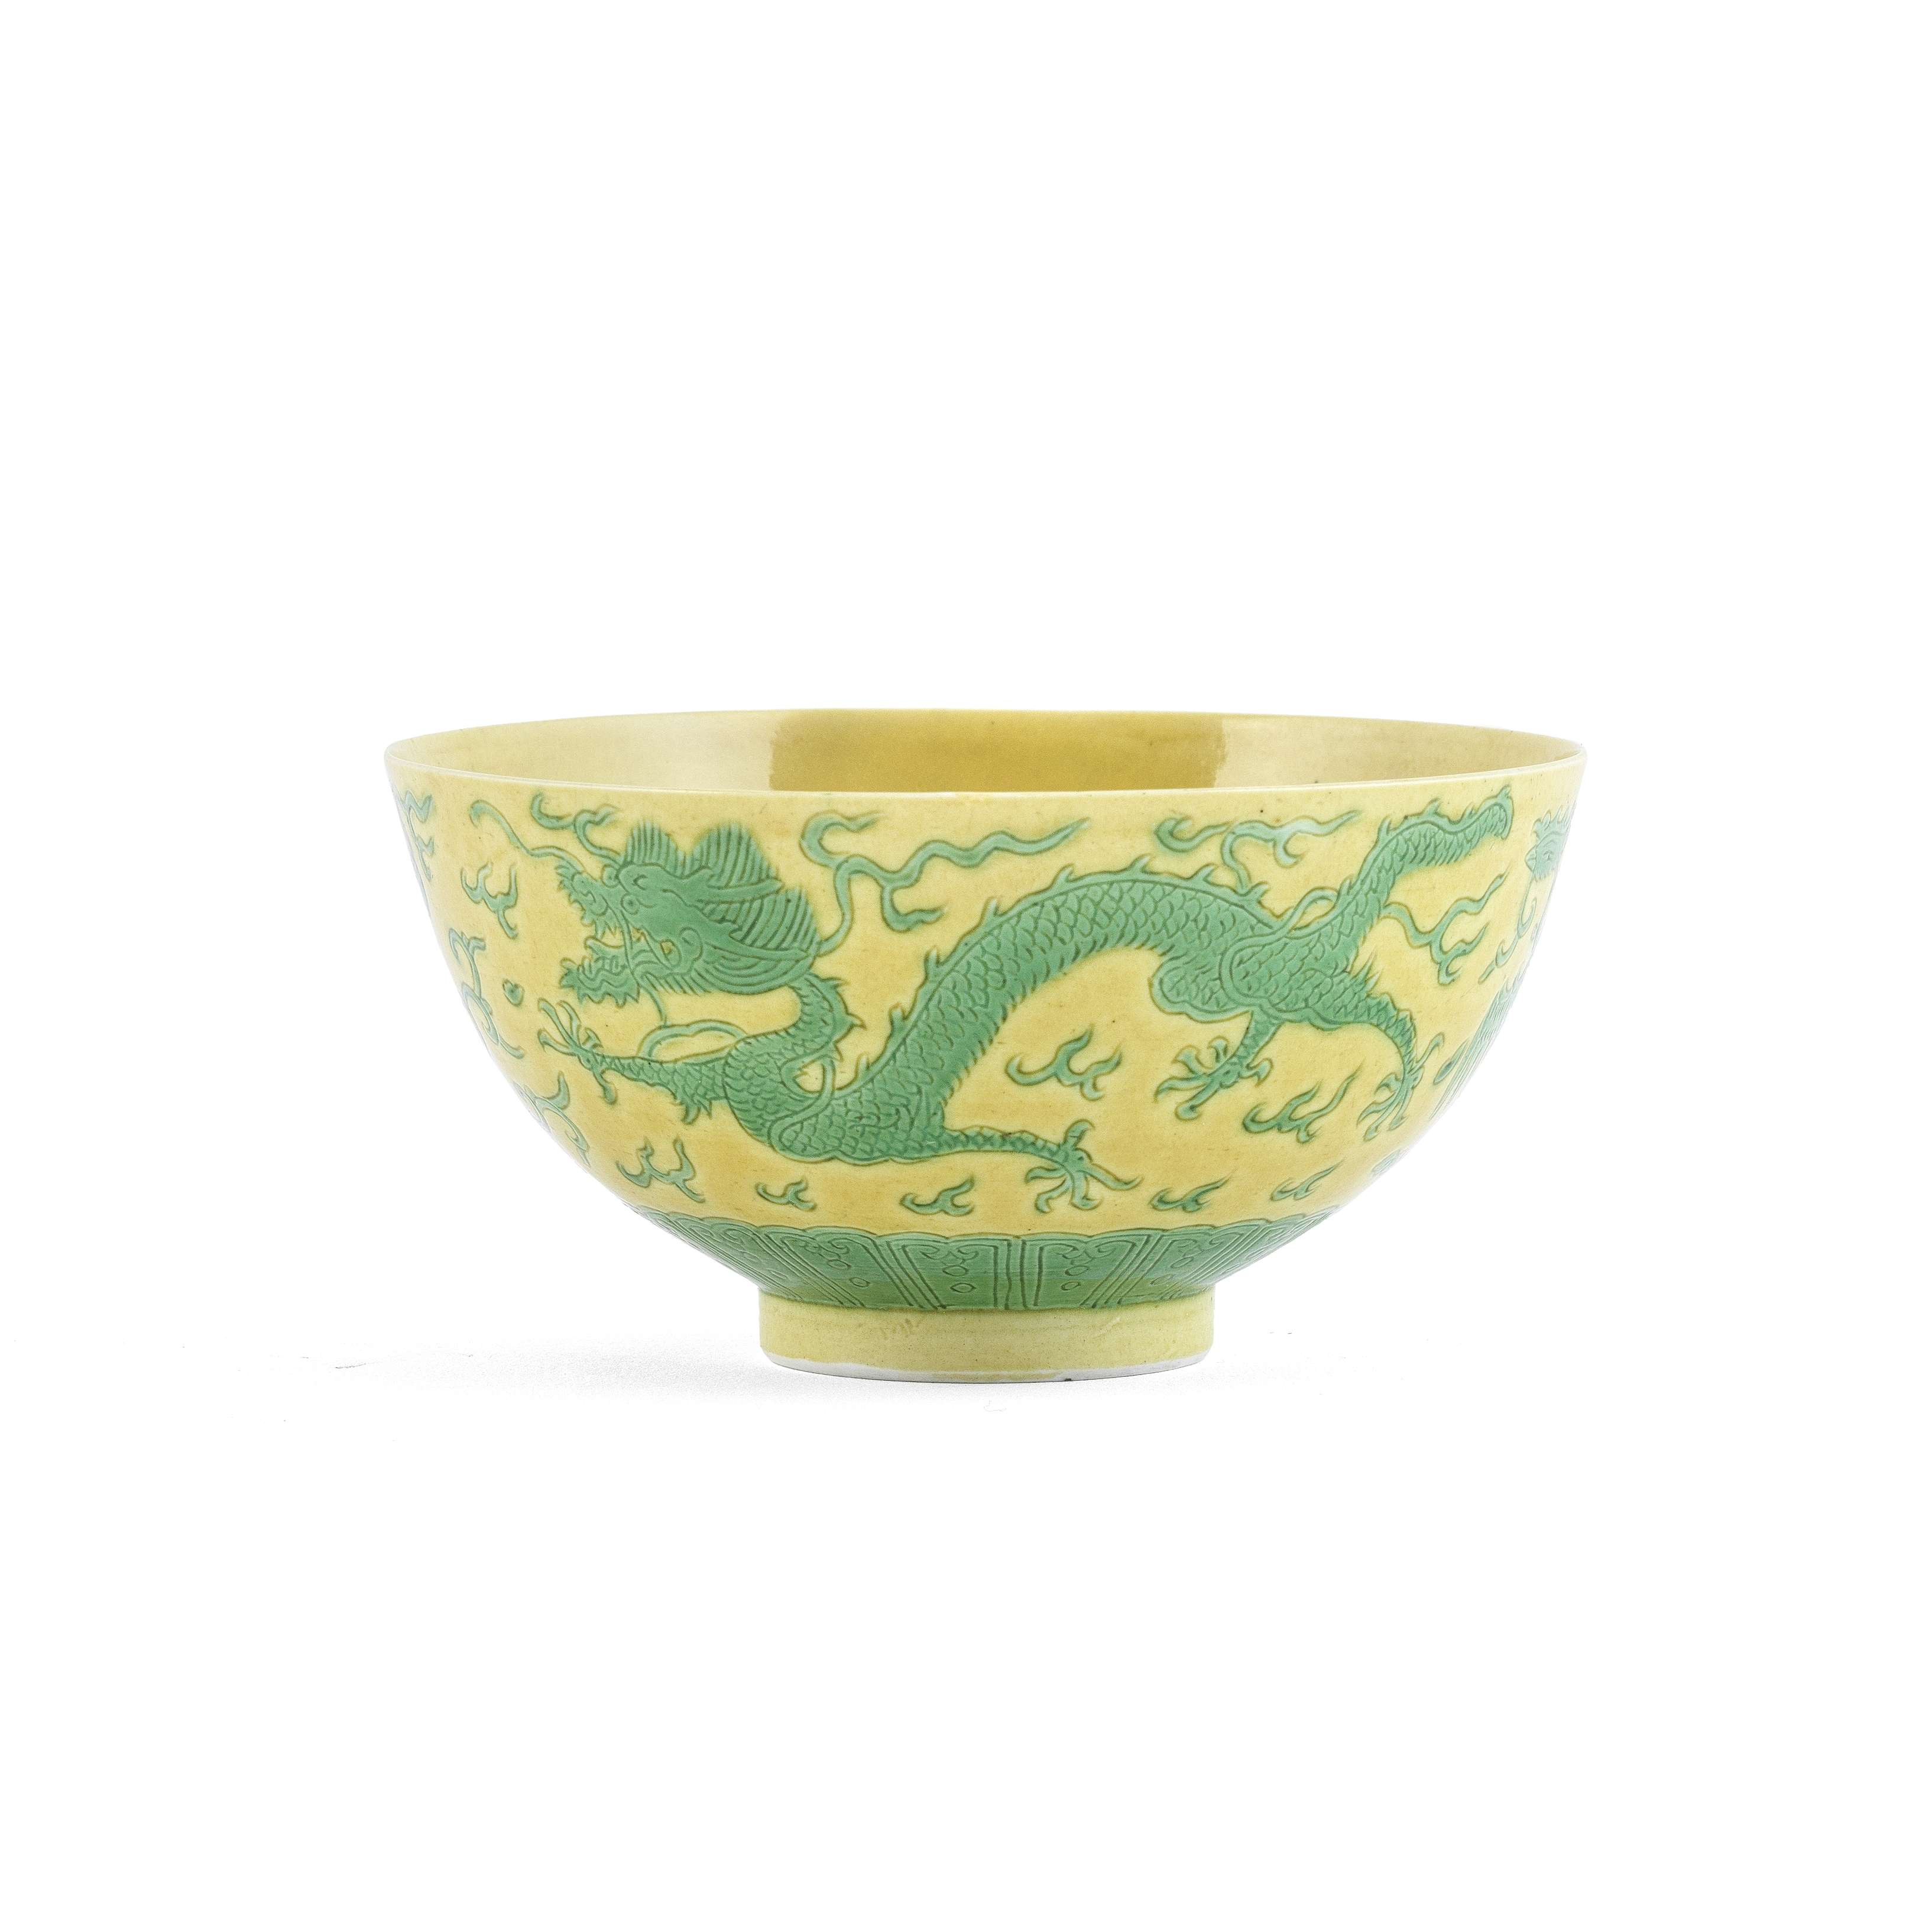 A GREEN AND YELLOW-GLAZED ANHUA 'DRAGON' BOWL Daoguang seal mark and of the period